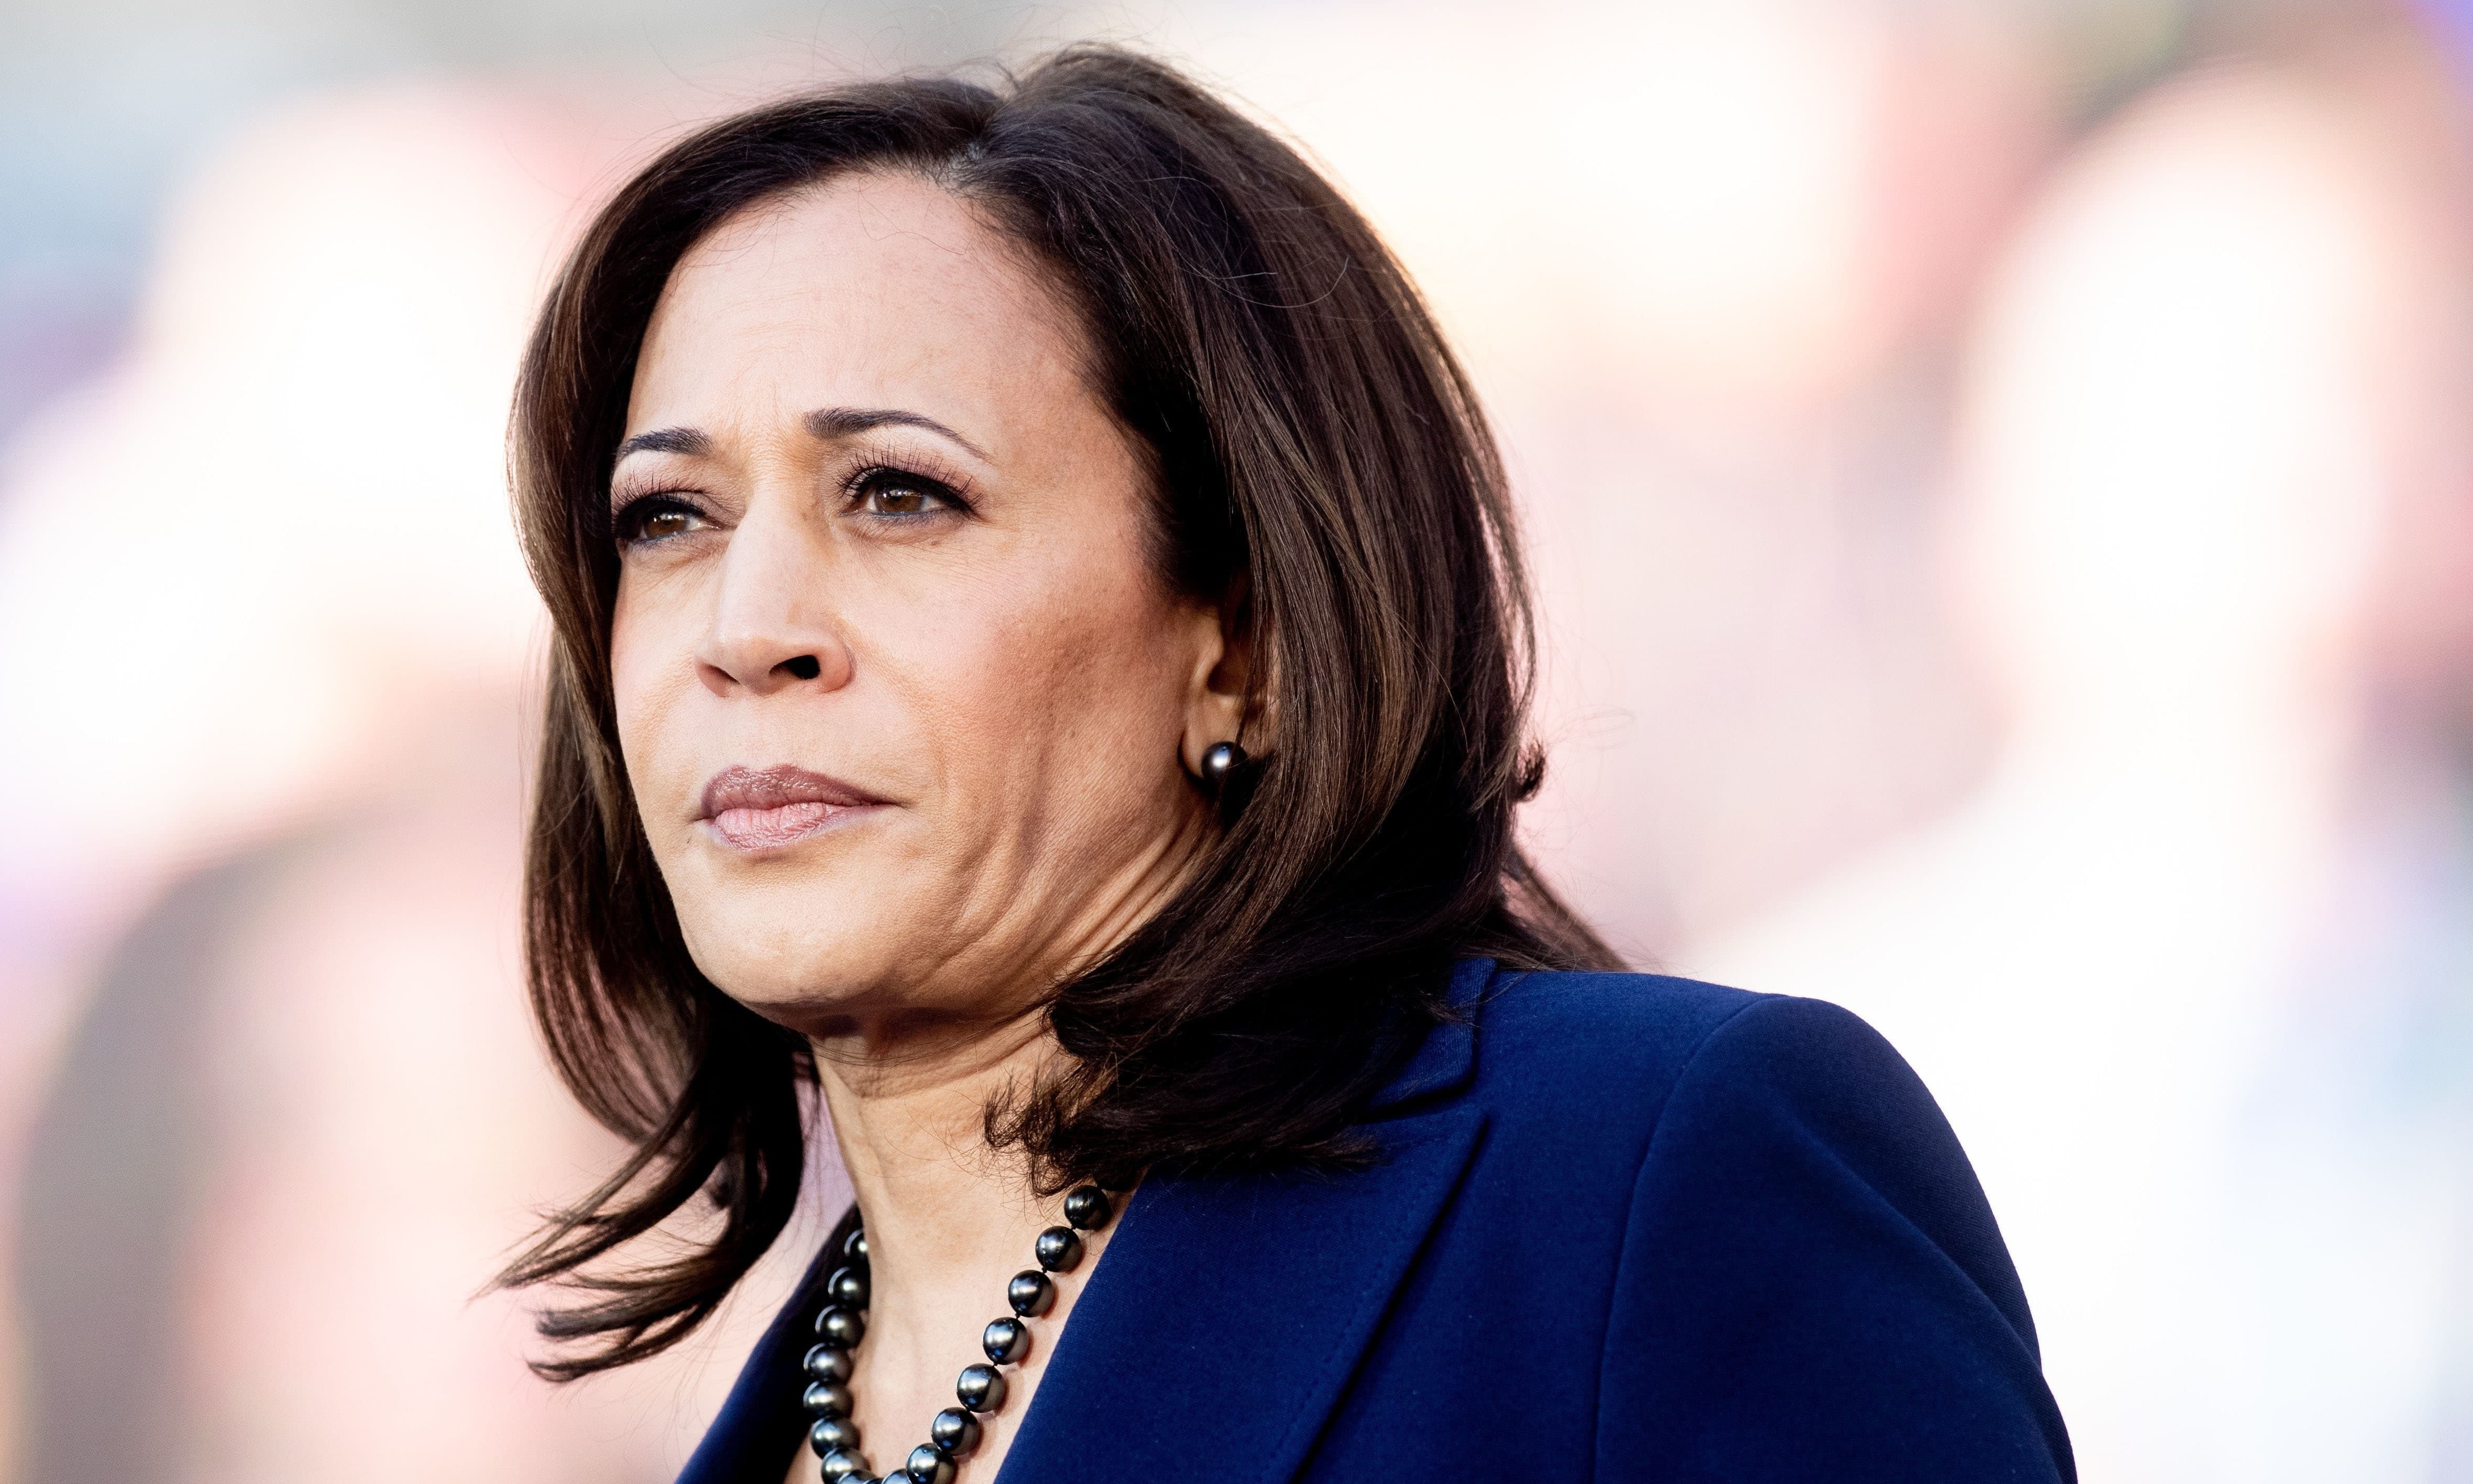 California Senator Kamala Harris looks on during a rally launching her presidential campaign on January 27, 2019 in Oakland, California. — AFP/File